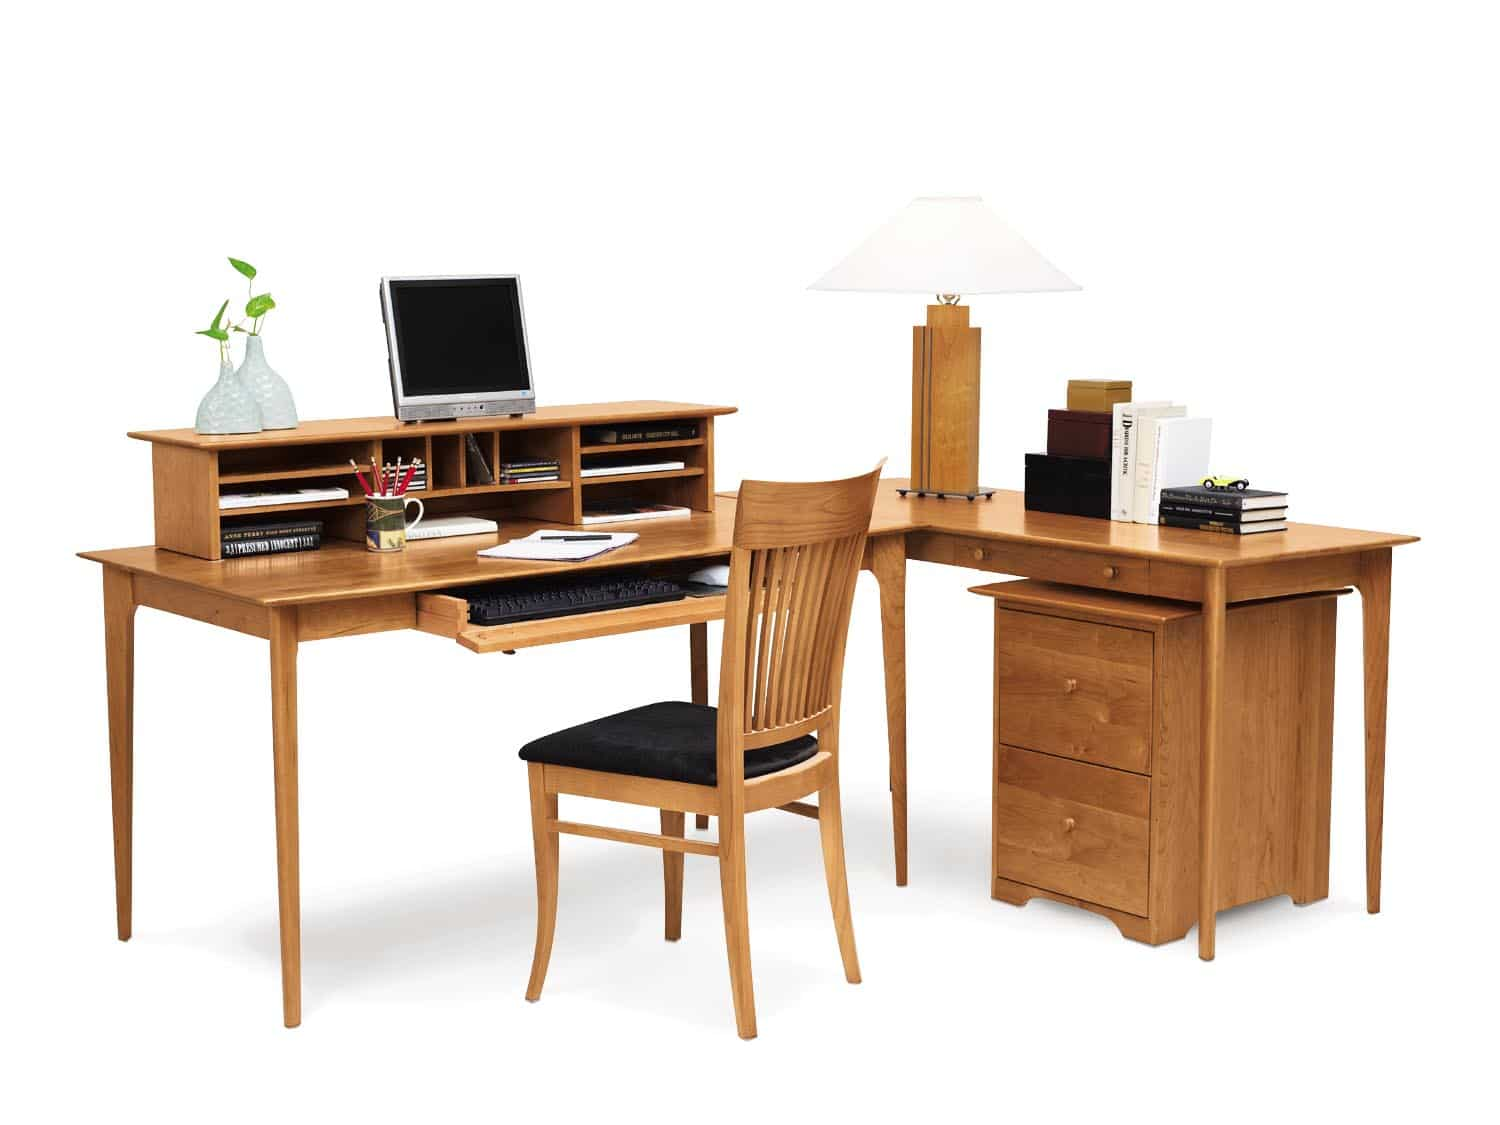 copeland, sarah, desk, circle furniture, home office